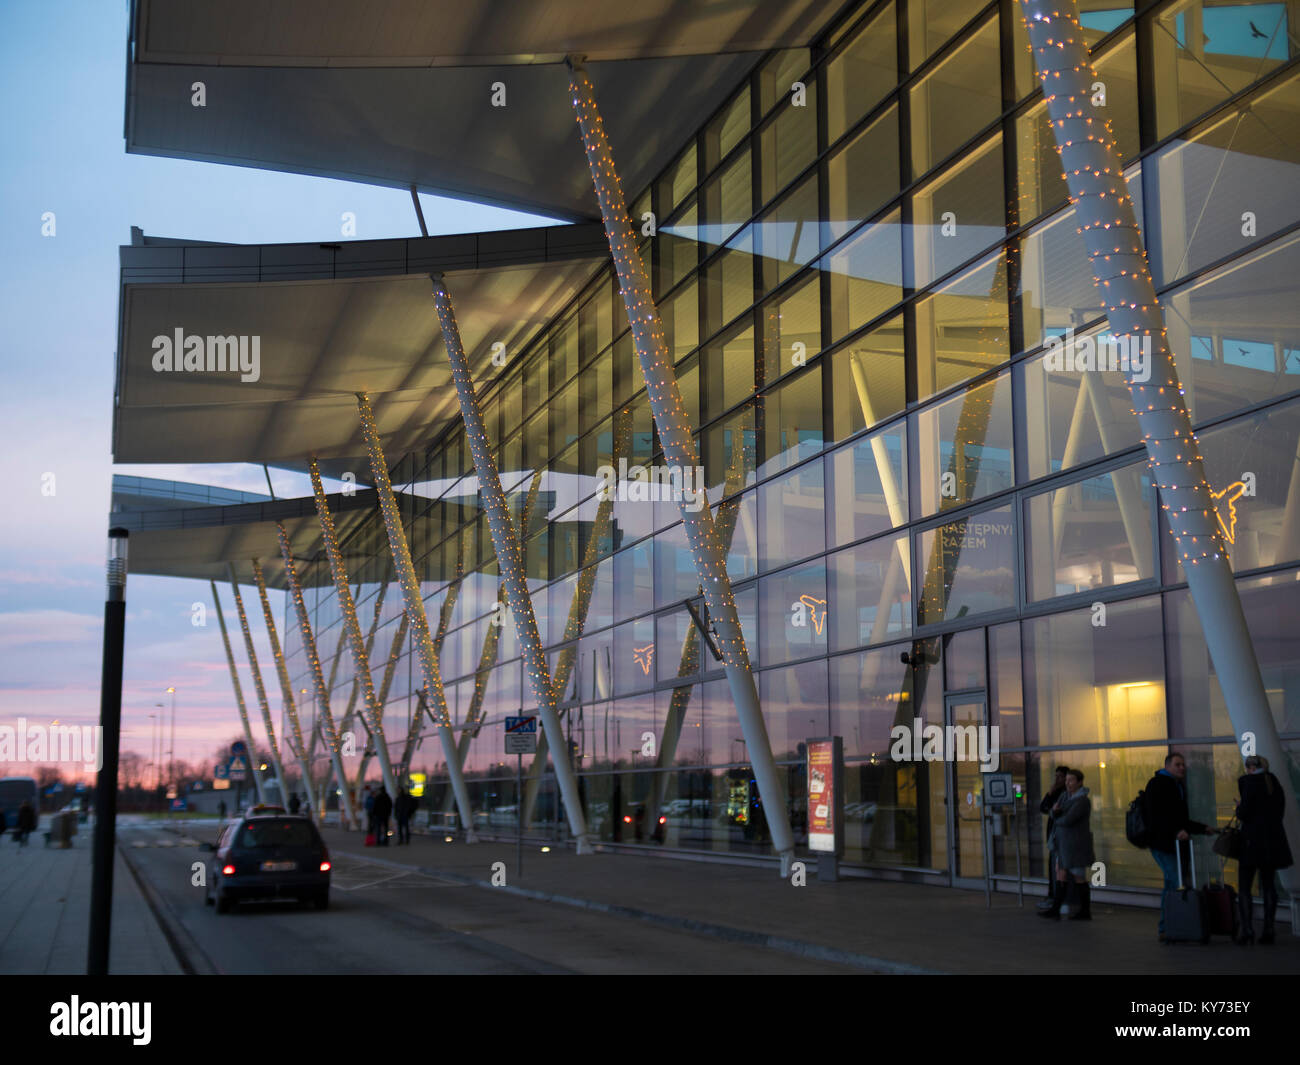 Wroclaw International Airport - Stock Image